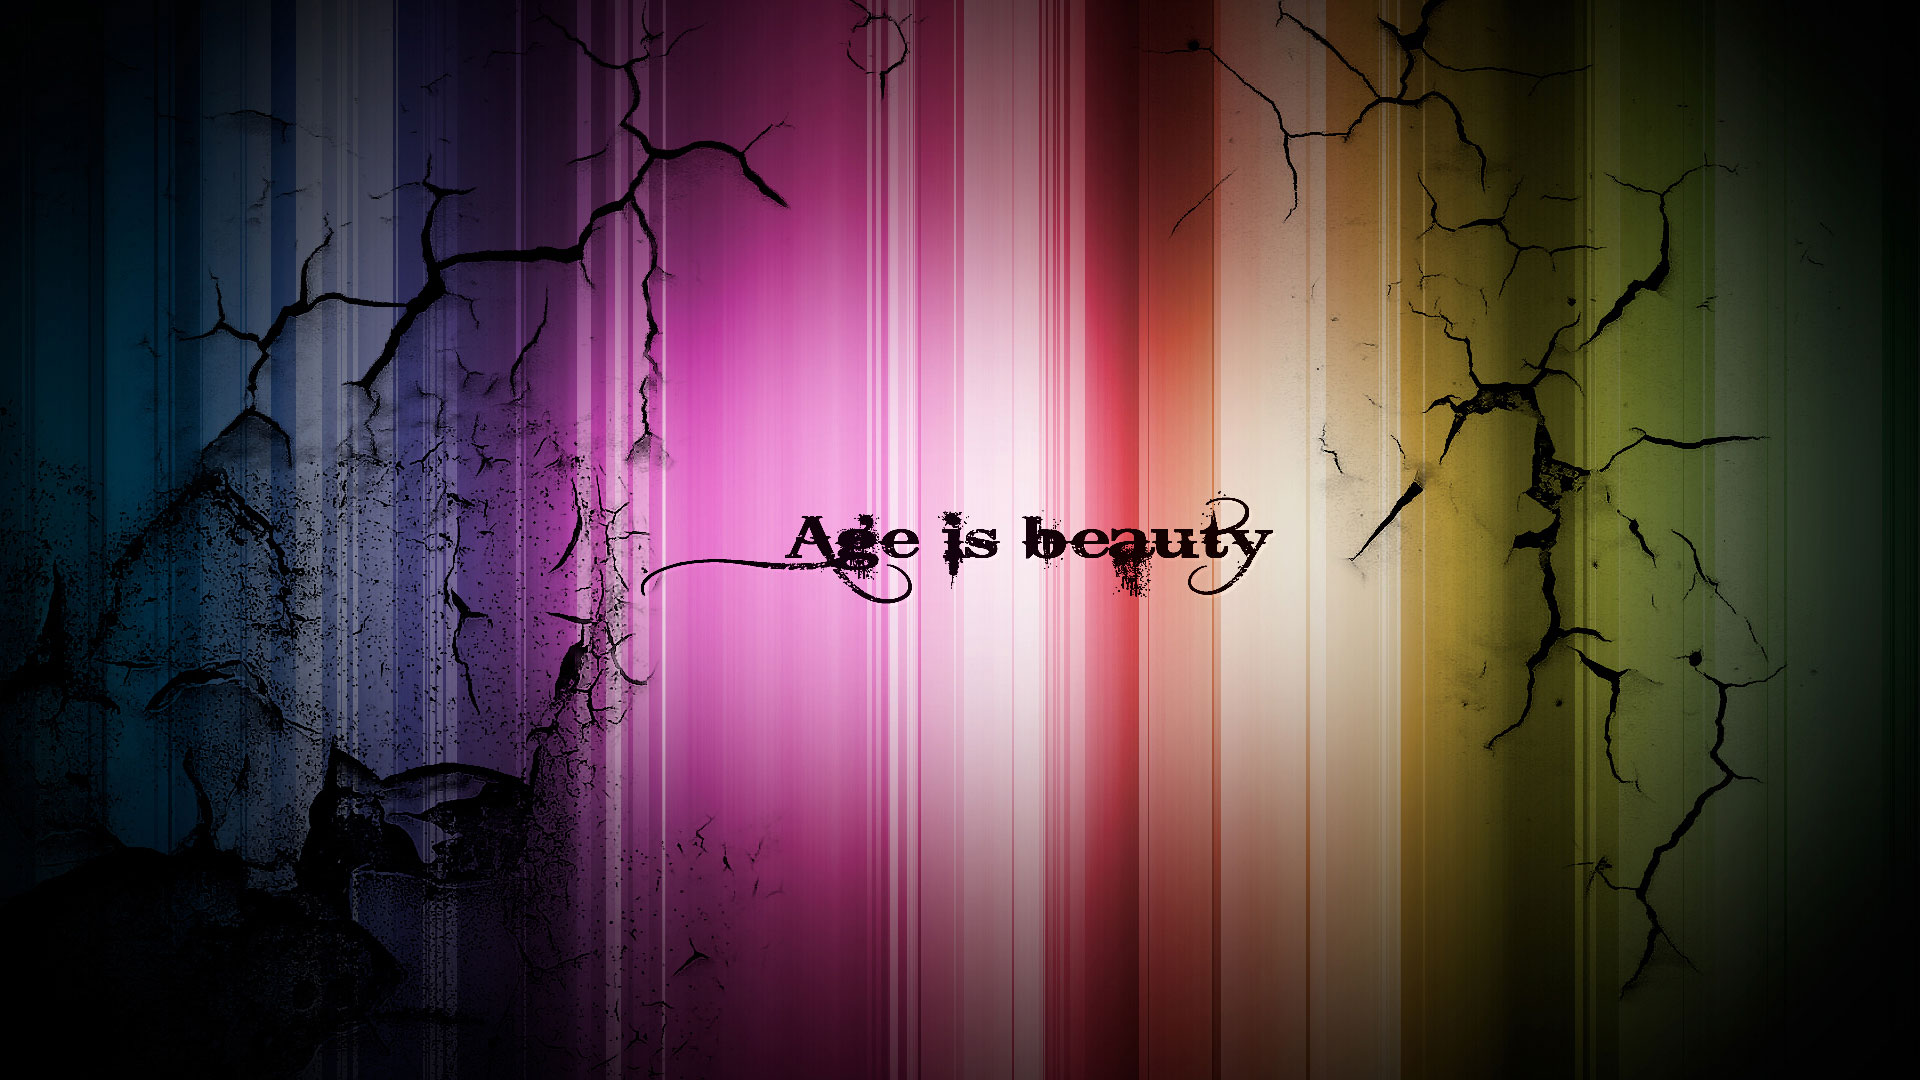 Age is Beauty HD Wallpapers HD Wallpapers 1920x1080